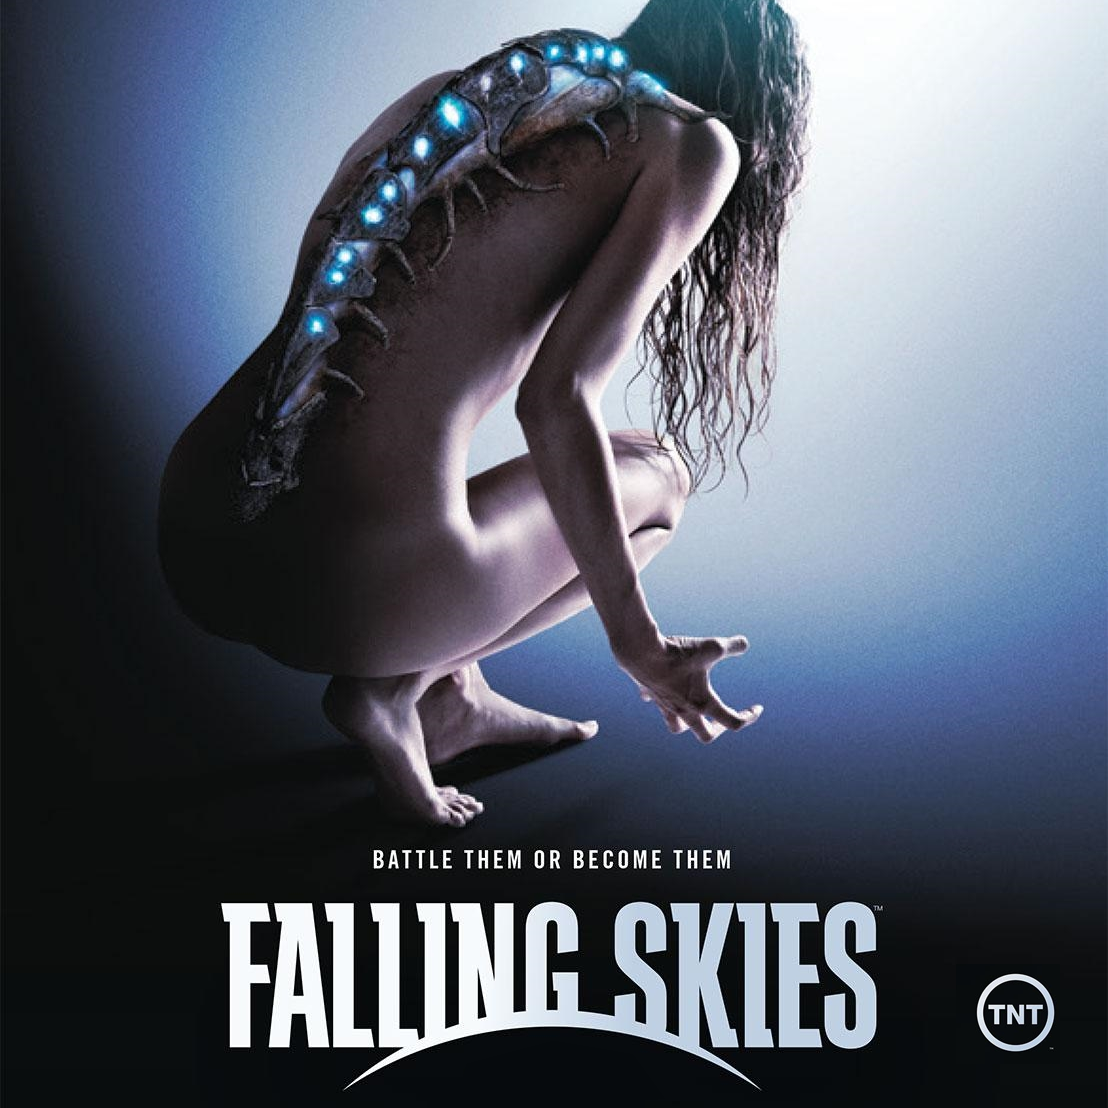 Falling Skies S01-04 BDRip/ DVDRip/ BluRay/ HDTV S04E12 Fp28